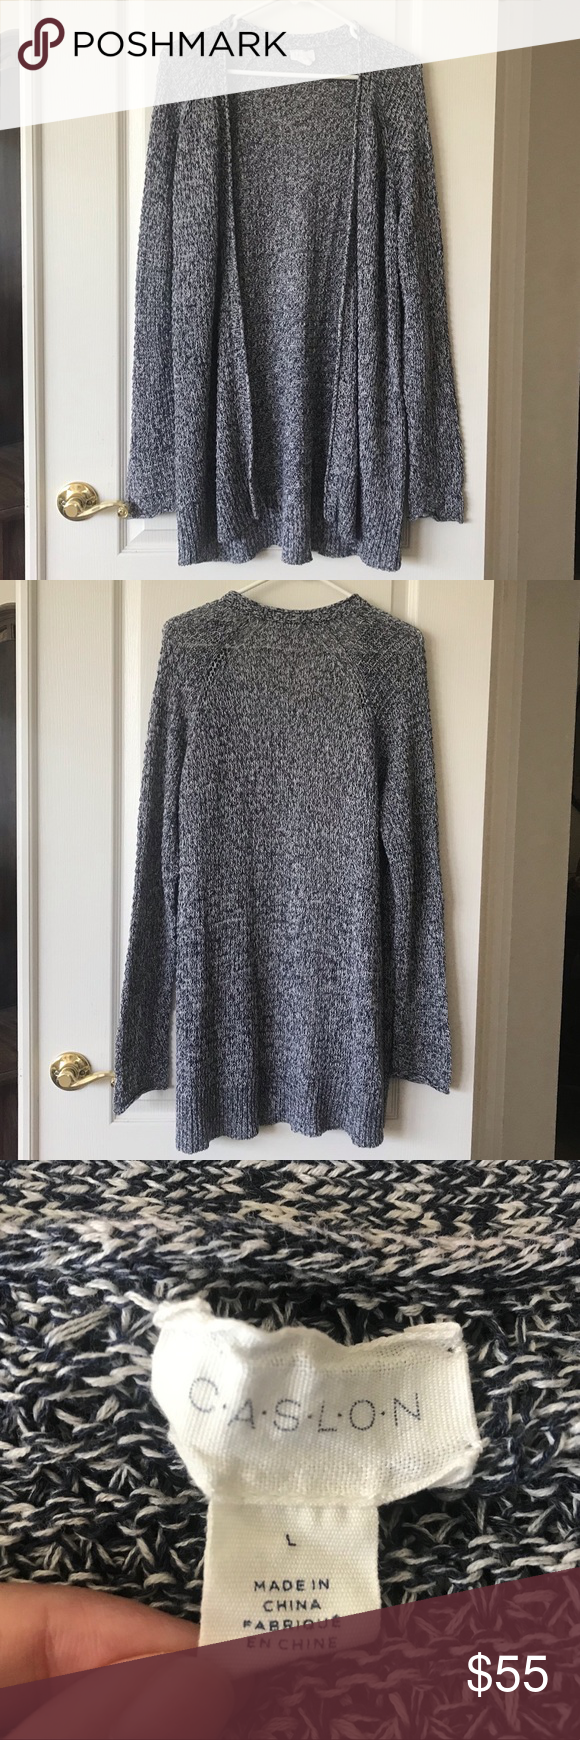 Caslon cardigan. Excellent condition! Caslon cardigan Excellent condition. Worn maybe once or twice.  Size: L Caslon Sweaters Cardigans #myposhpicks